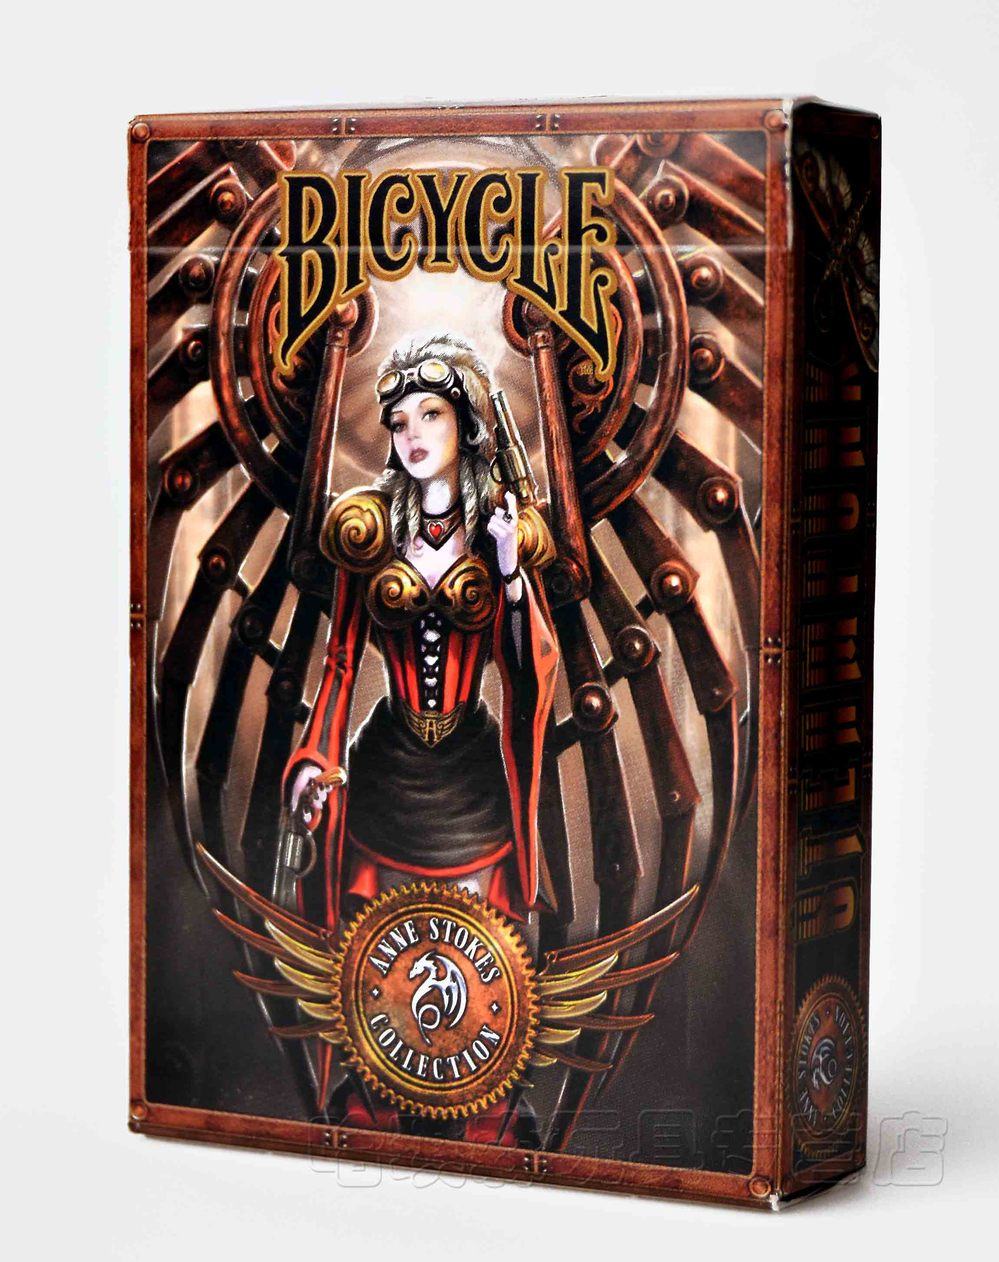 High Quality Bicycle Anne Stokes Steampunk Playing Cards